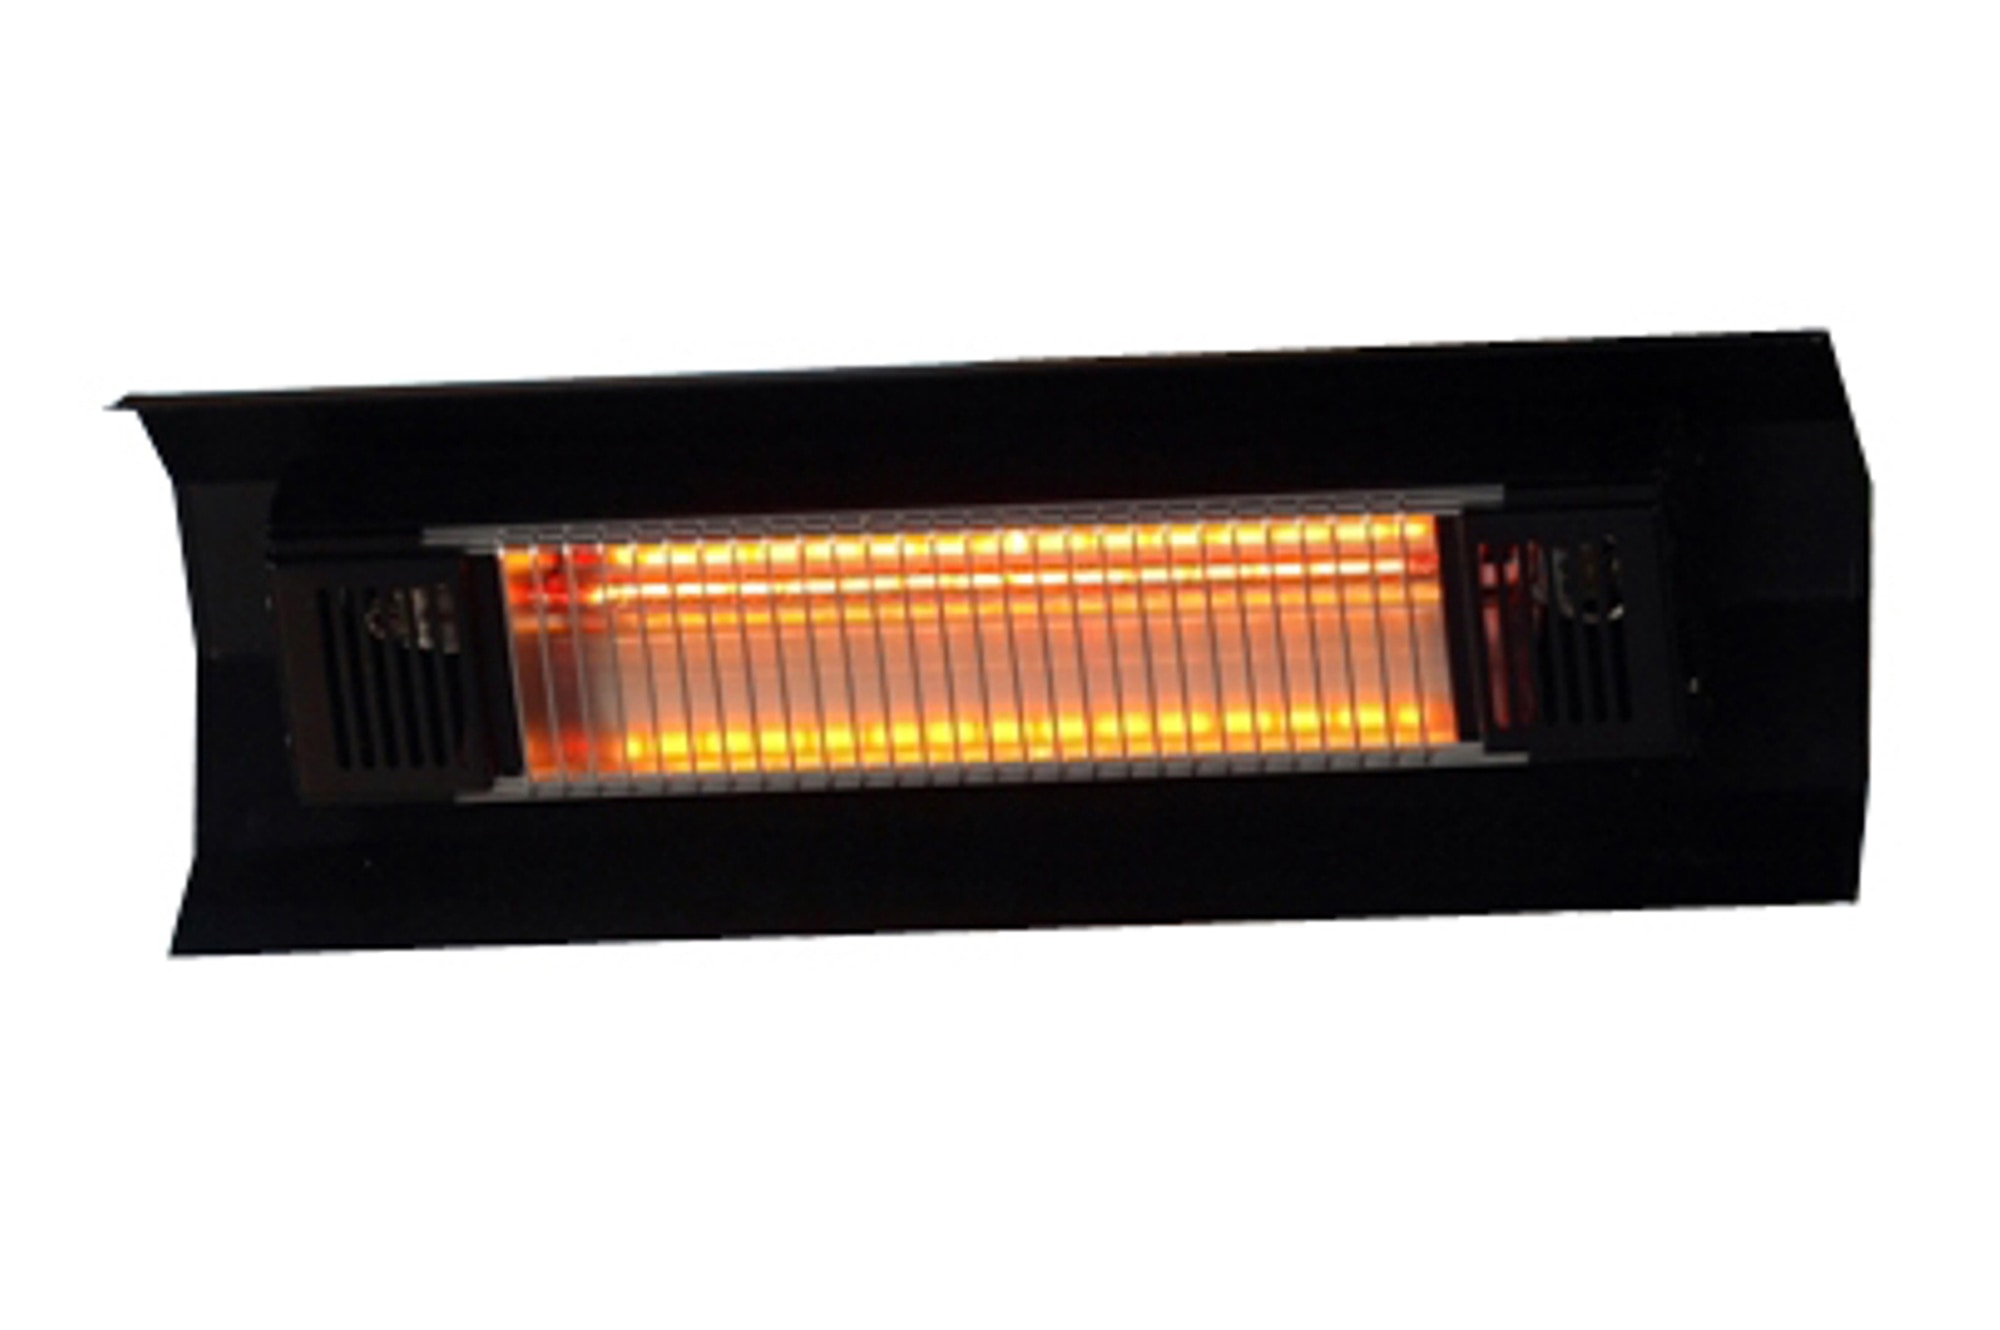 Kontiki Heaters Fireplaces Outdoor Electric Heaters Fire